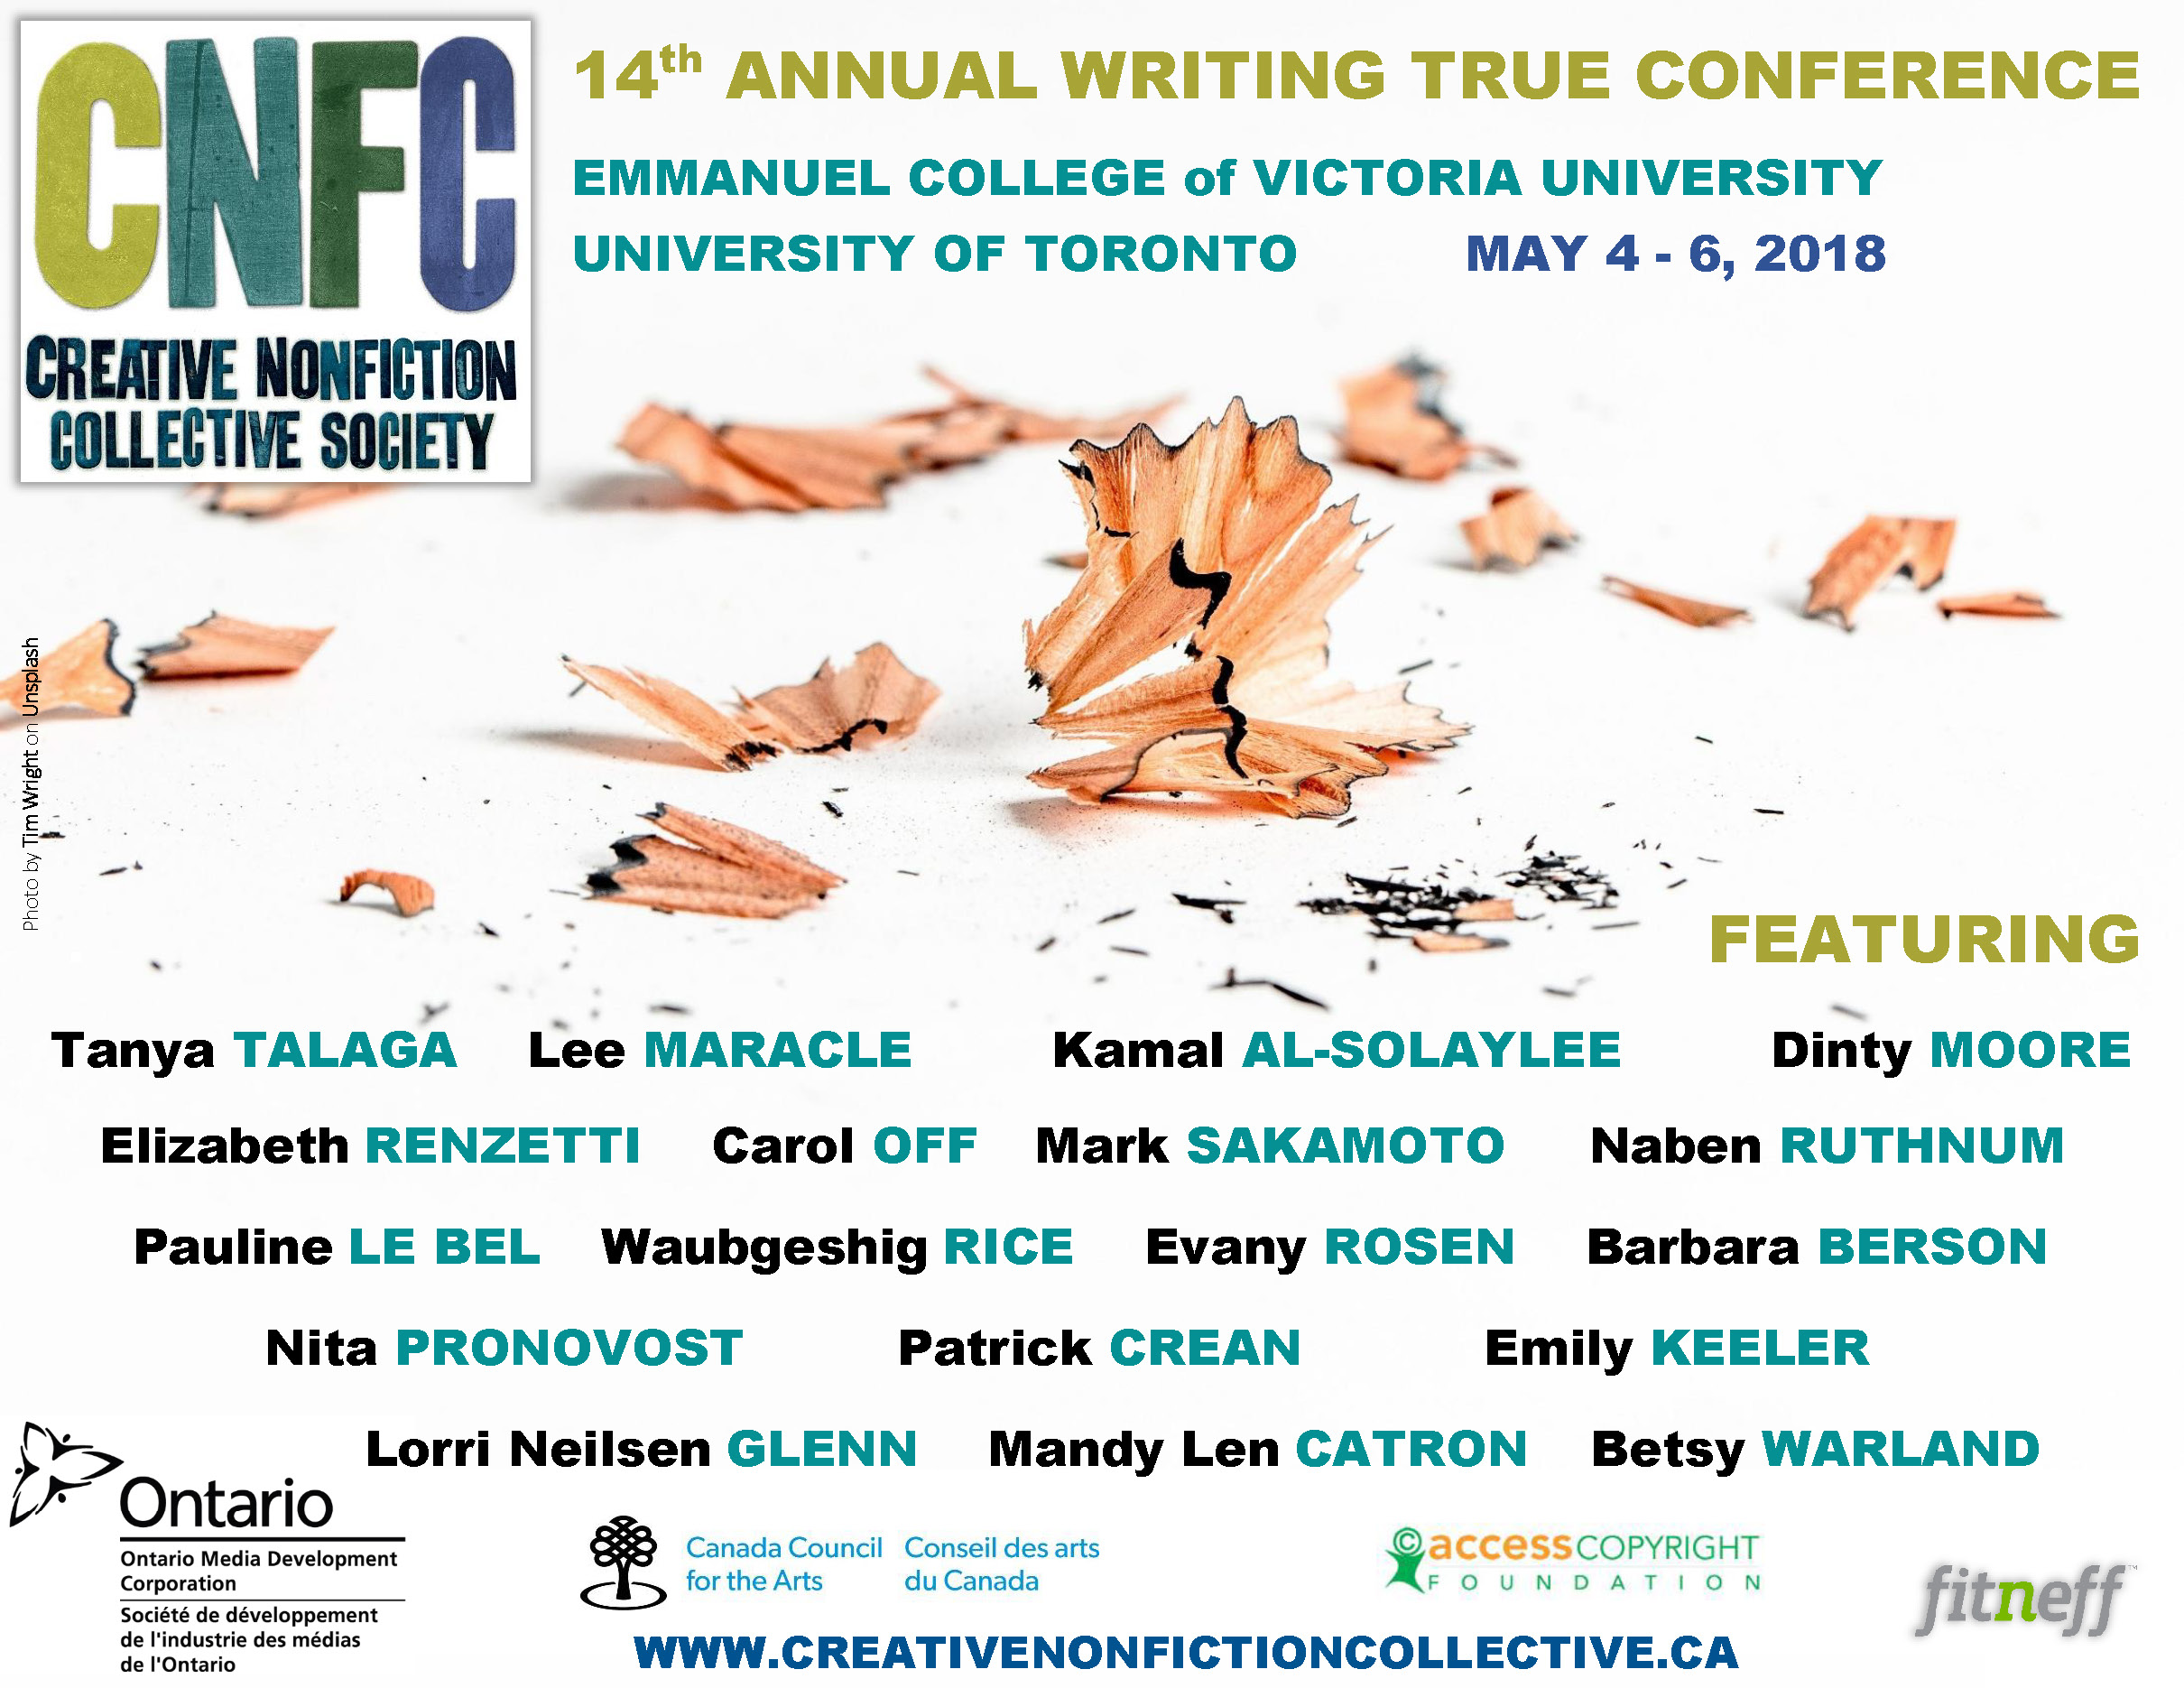 Poster for the 2018 Creative Nonfiction Collective Society Conference